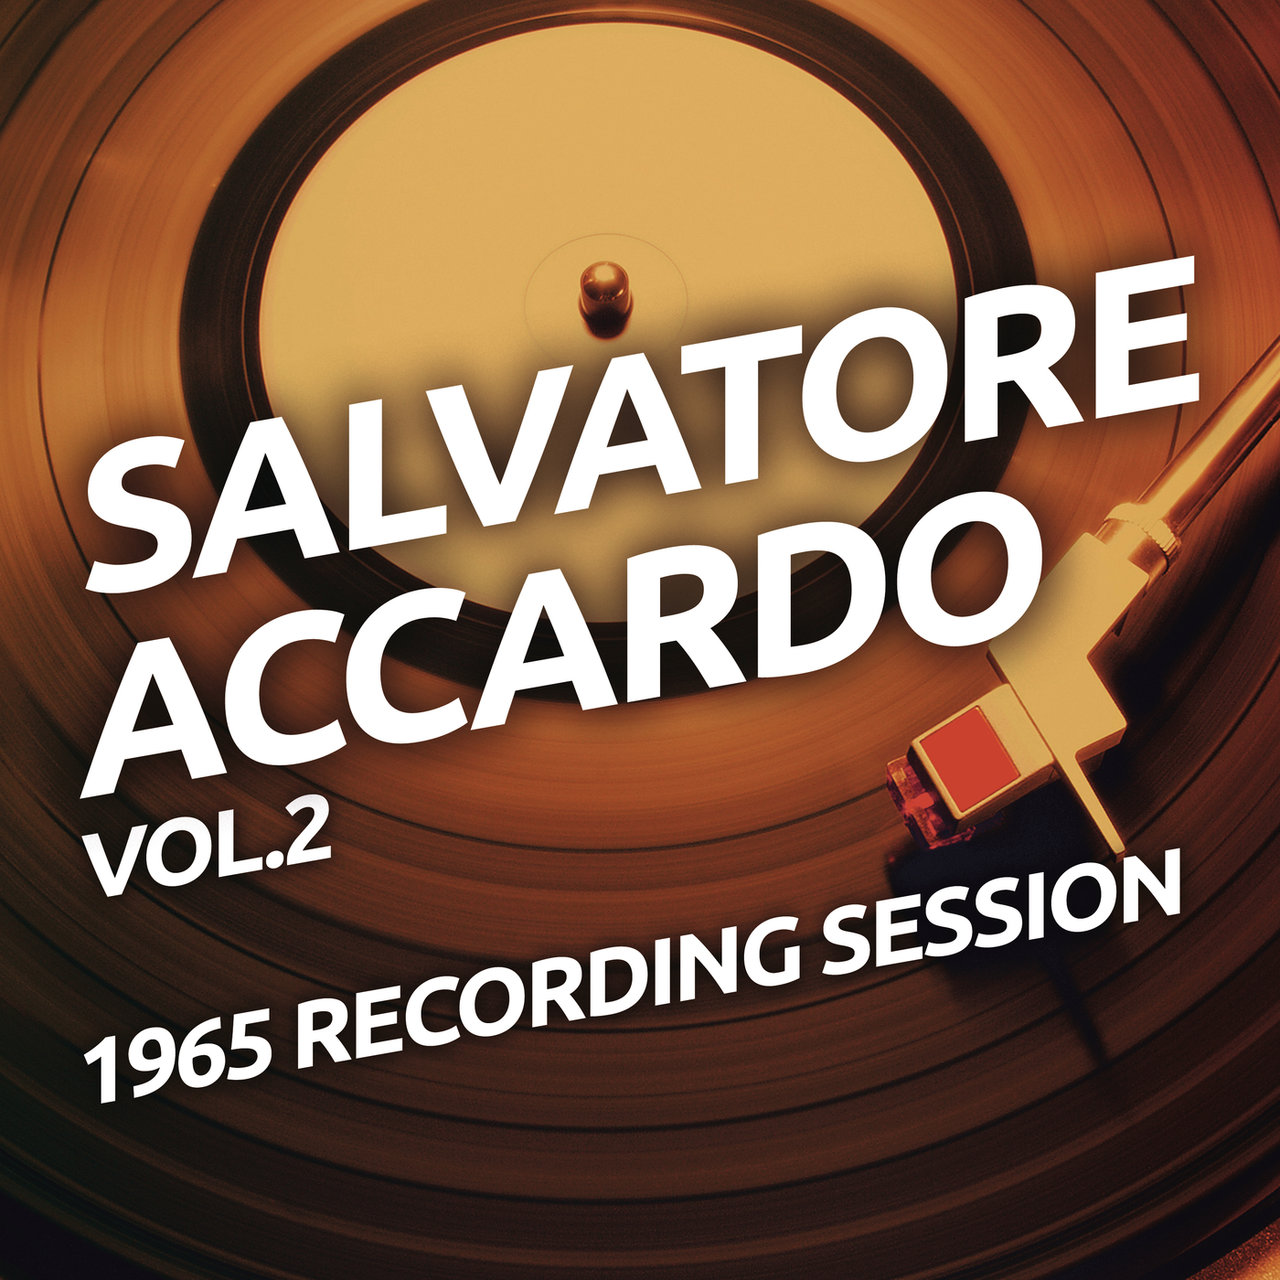 Salvatore Accardo - 1965 Recording Session vol.2